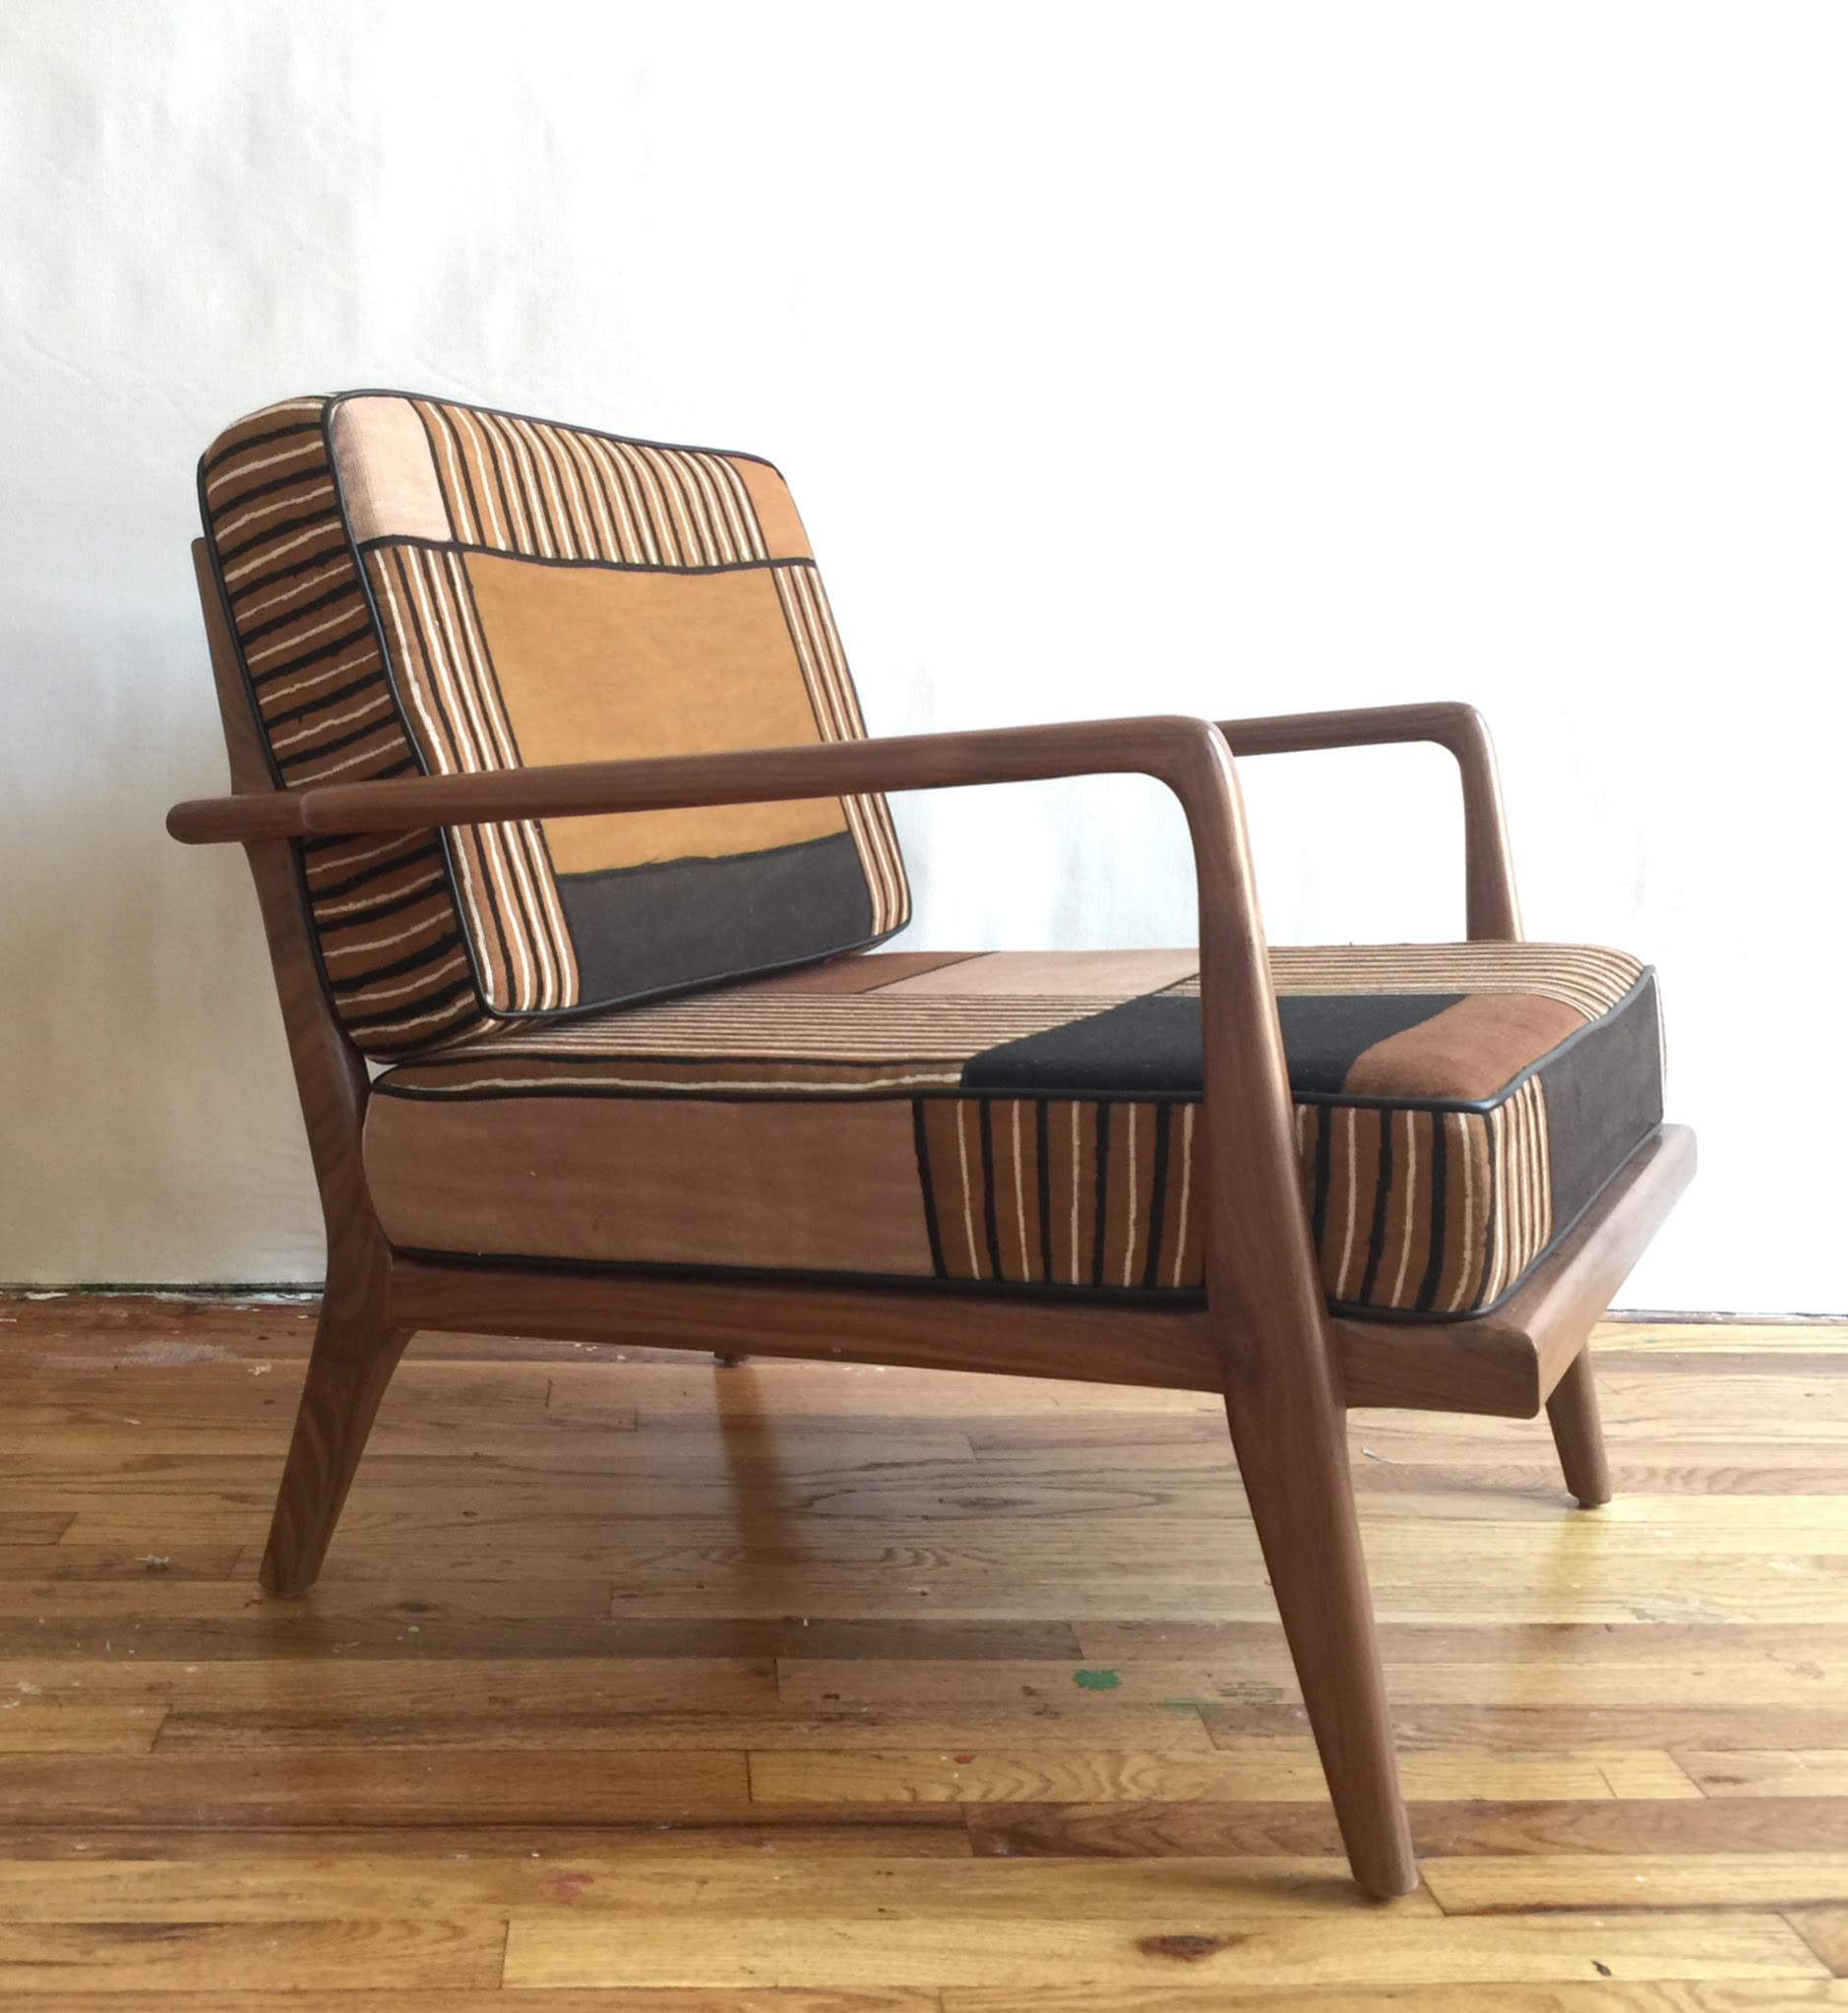 smilow-furniture-chair-with-mud-cloth